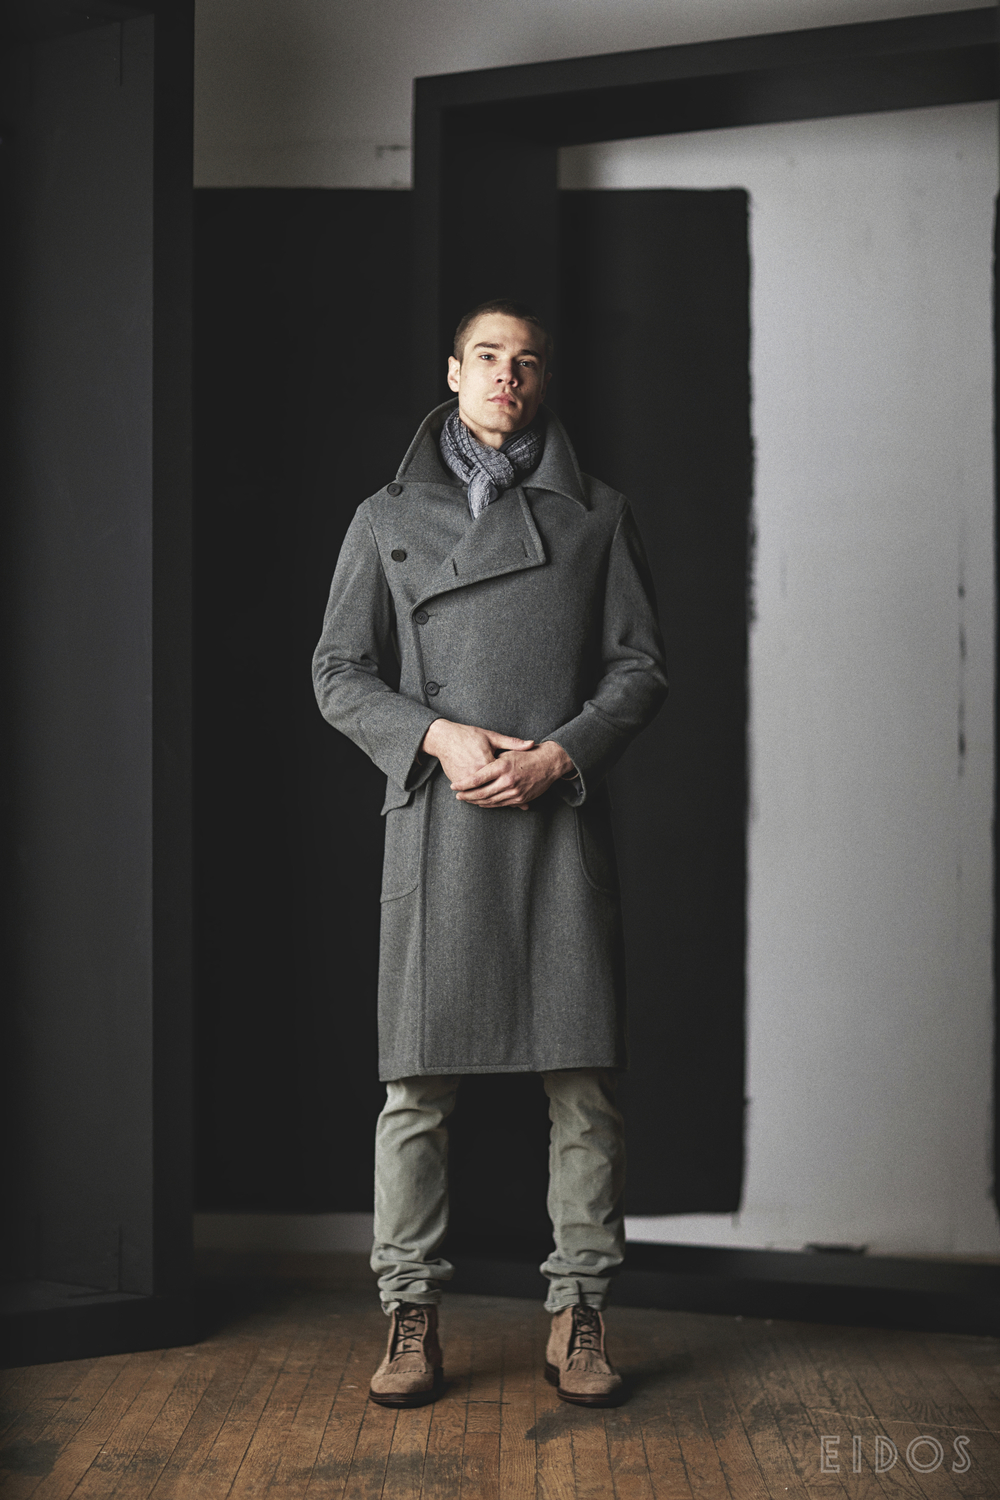 EIDOS AW16 LOOKBOOK NYFW (glen allsop) 022.JPG